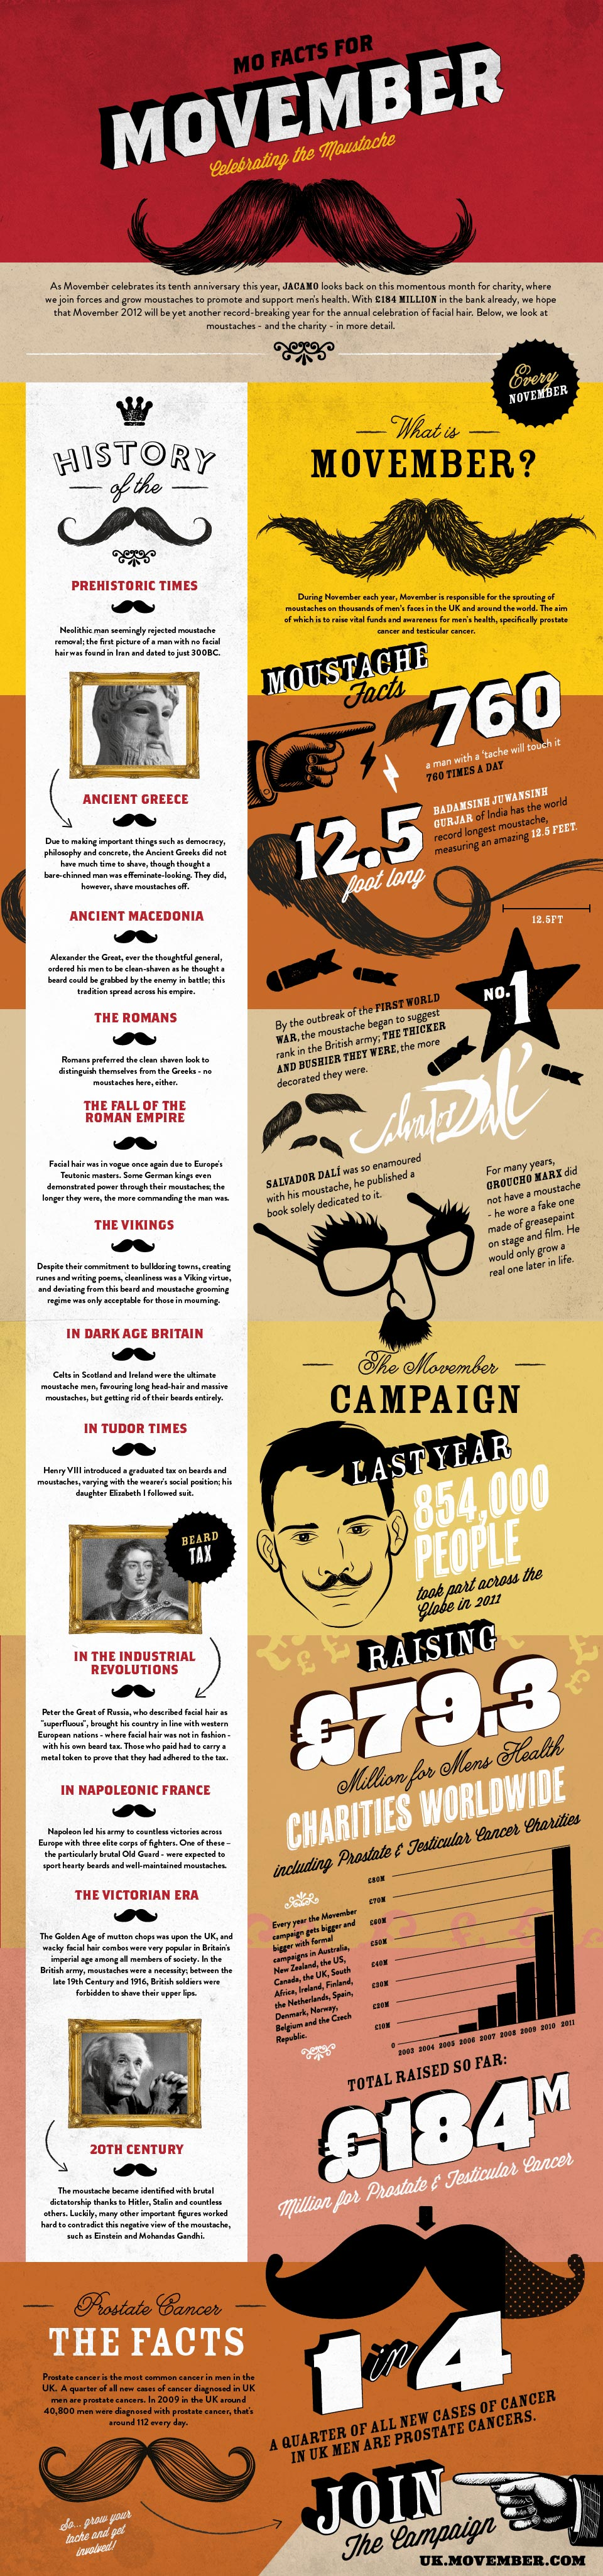 A History of Movember and the Moustache